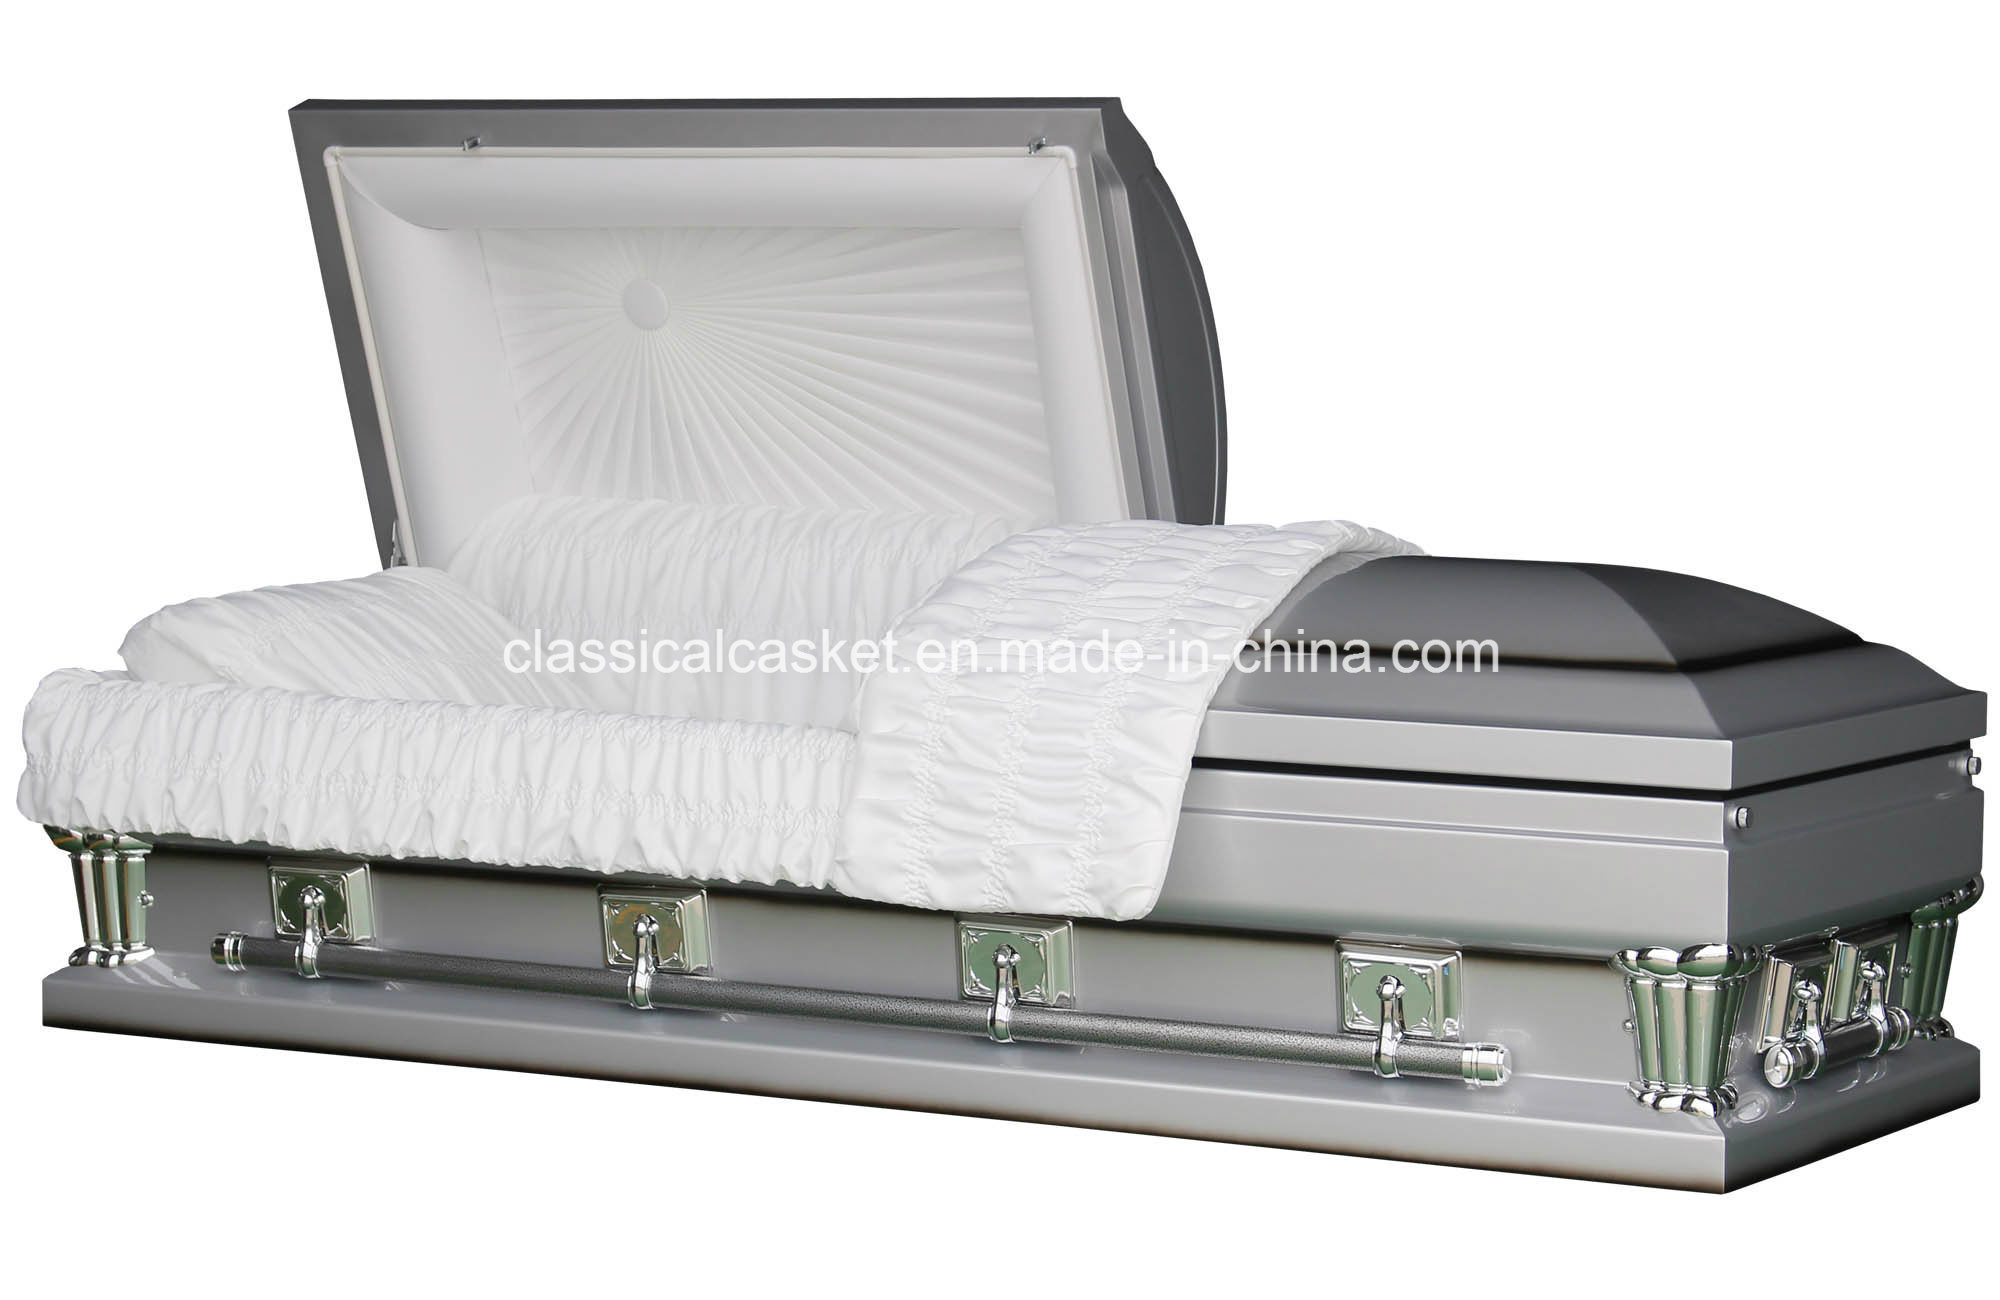 Frank Silver Oversize 28 Inches Metal Casket